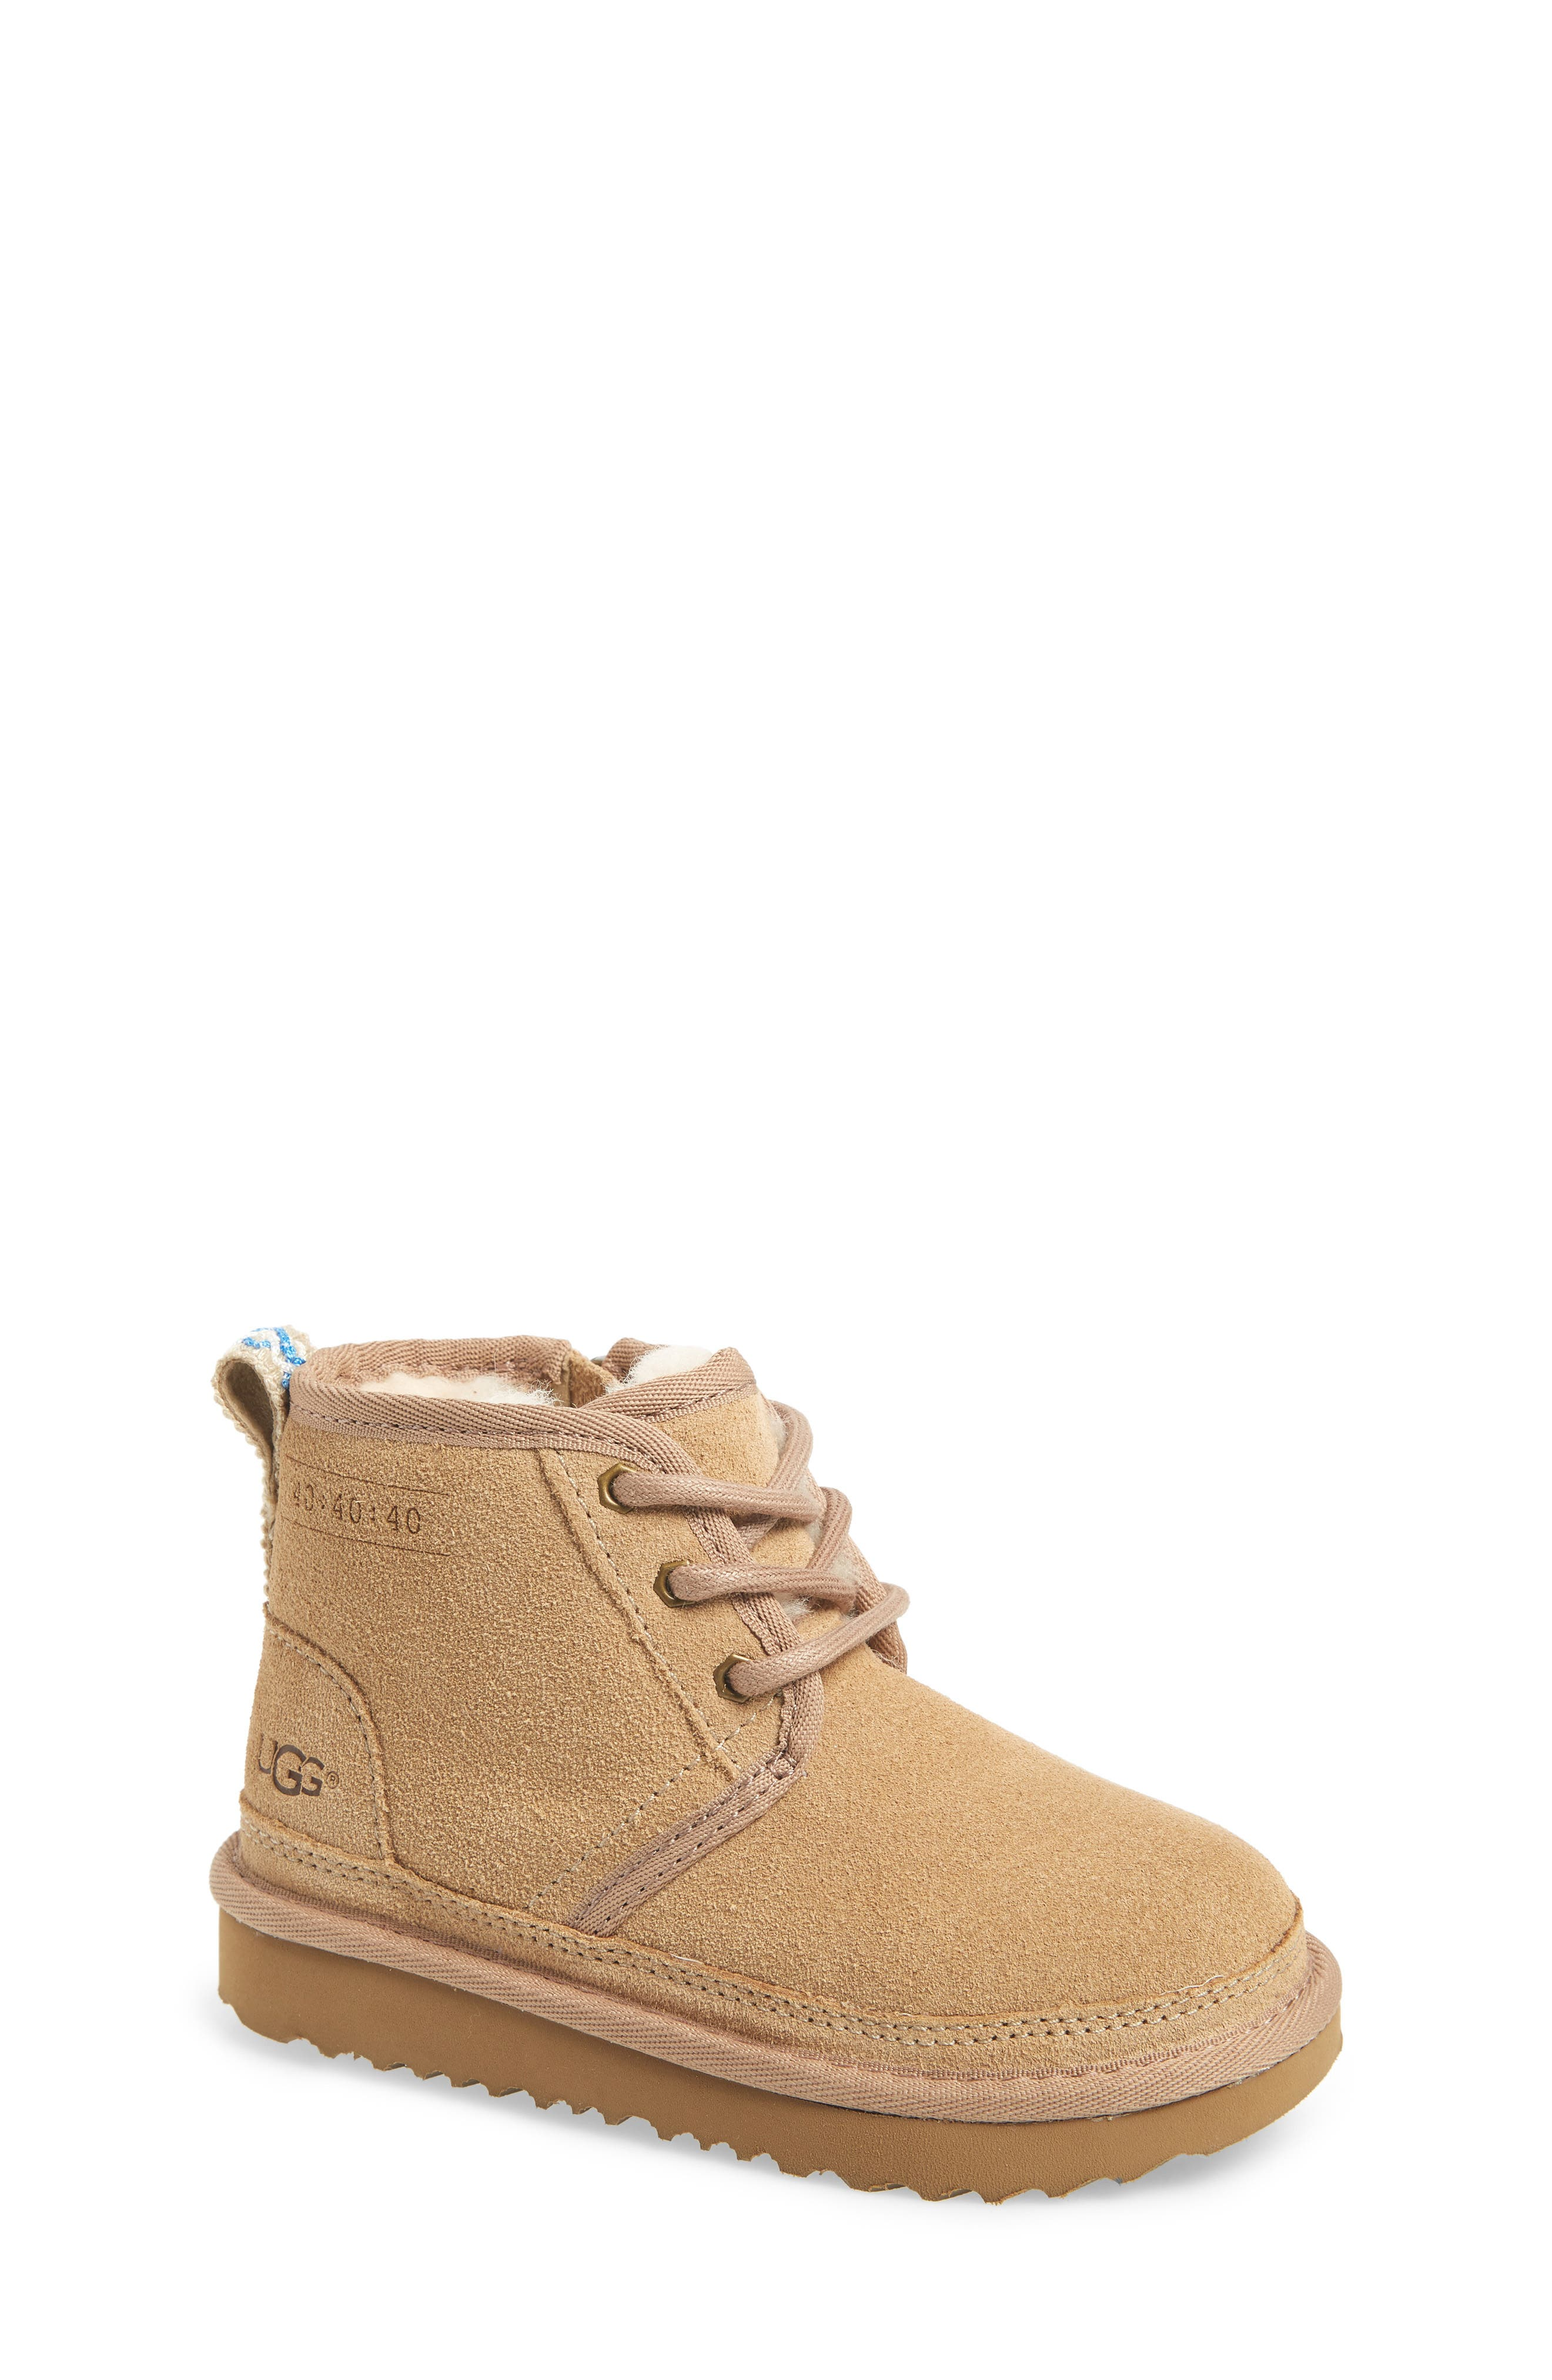 Neumel 40:40:40 Anniversary Boot,                         Main,                         color, SAND